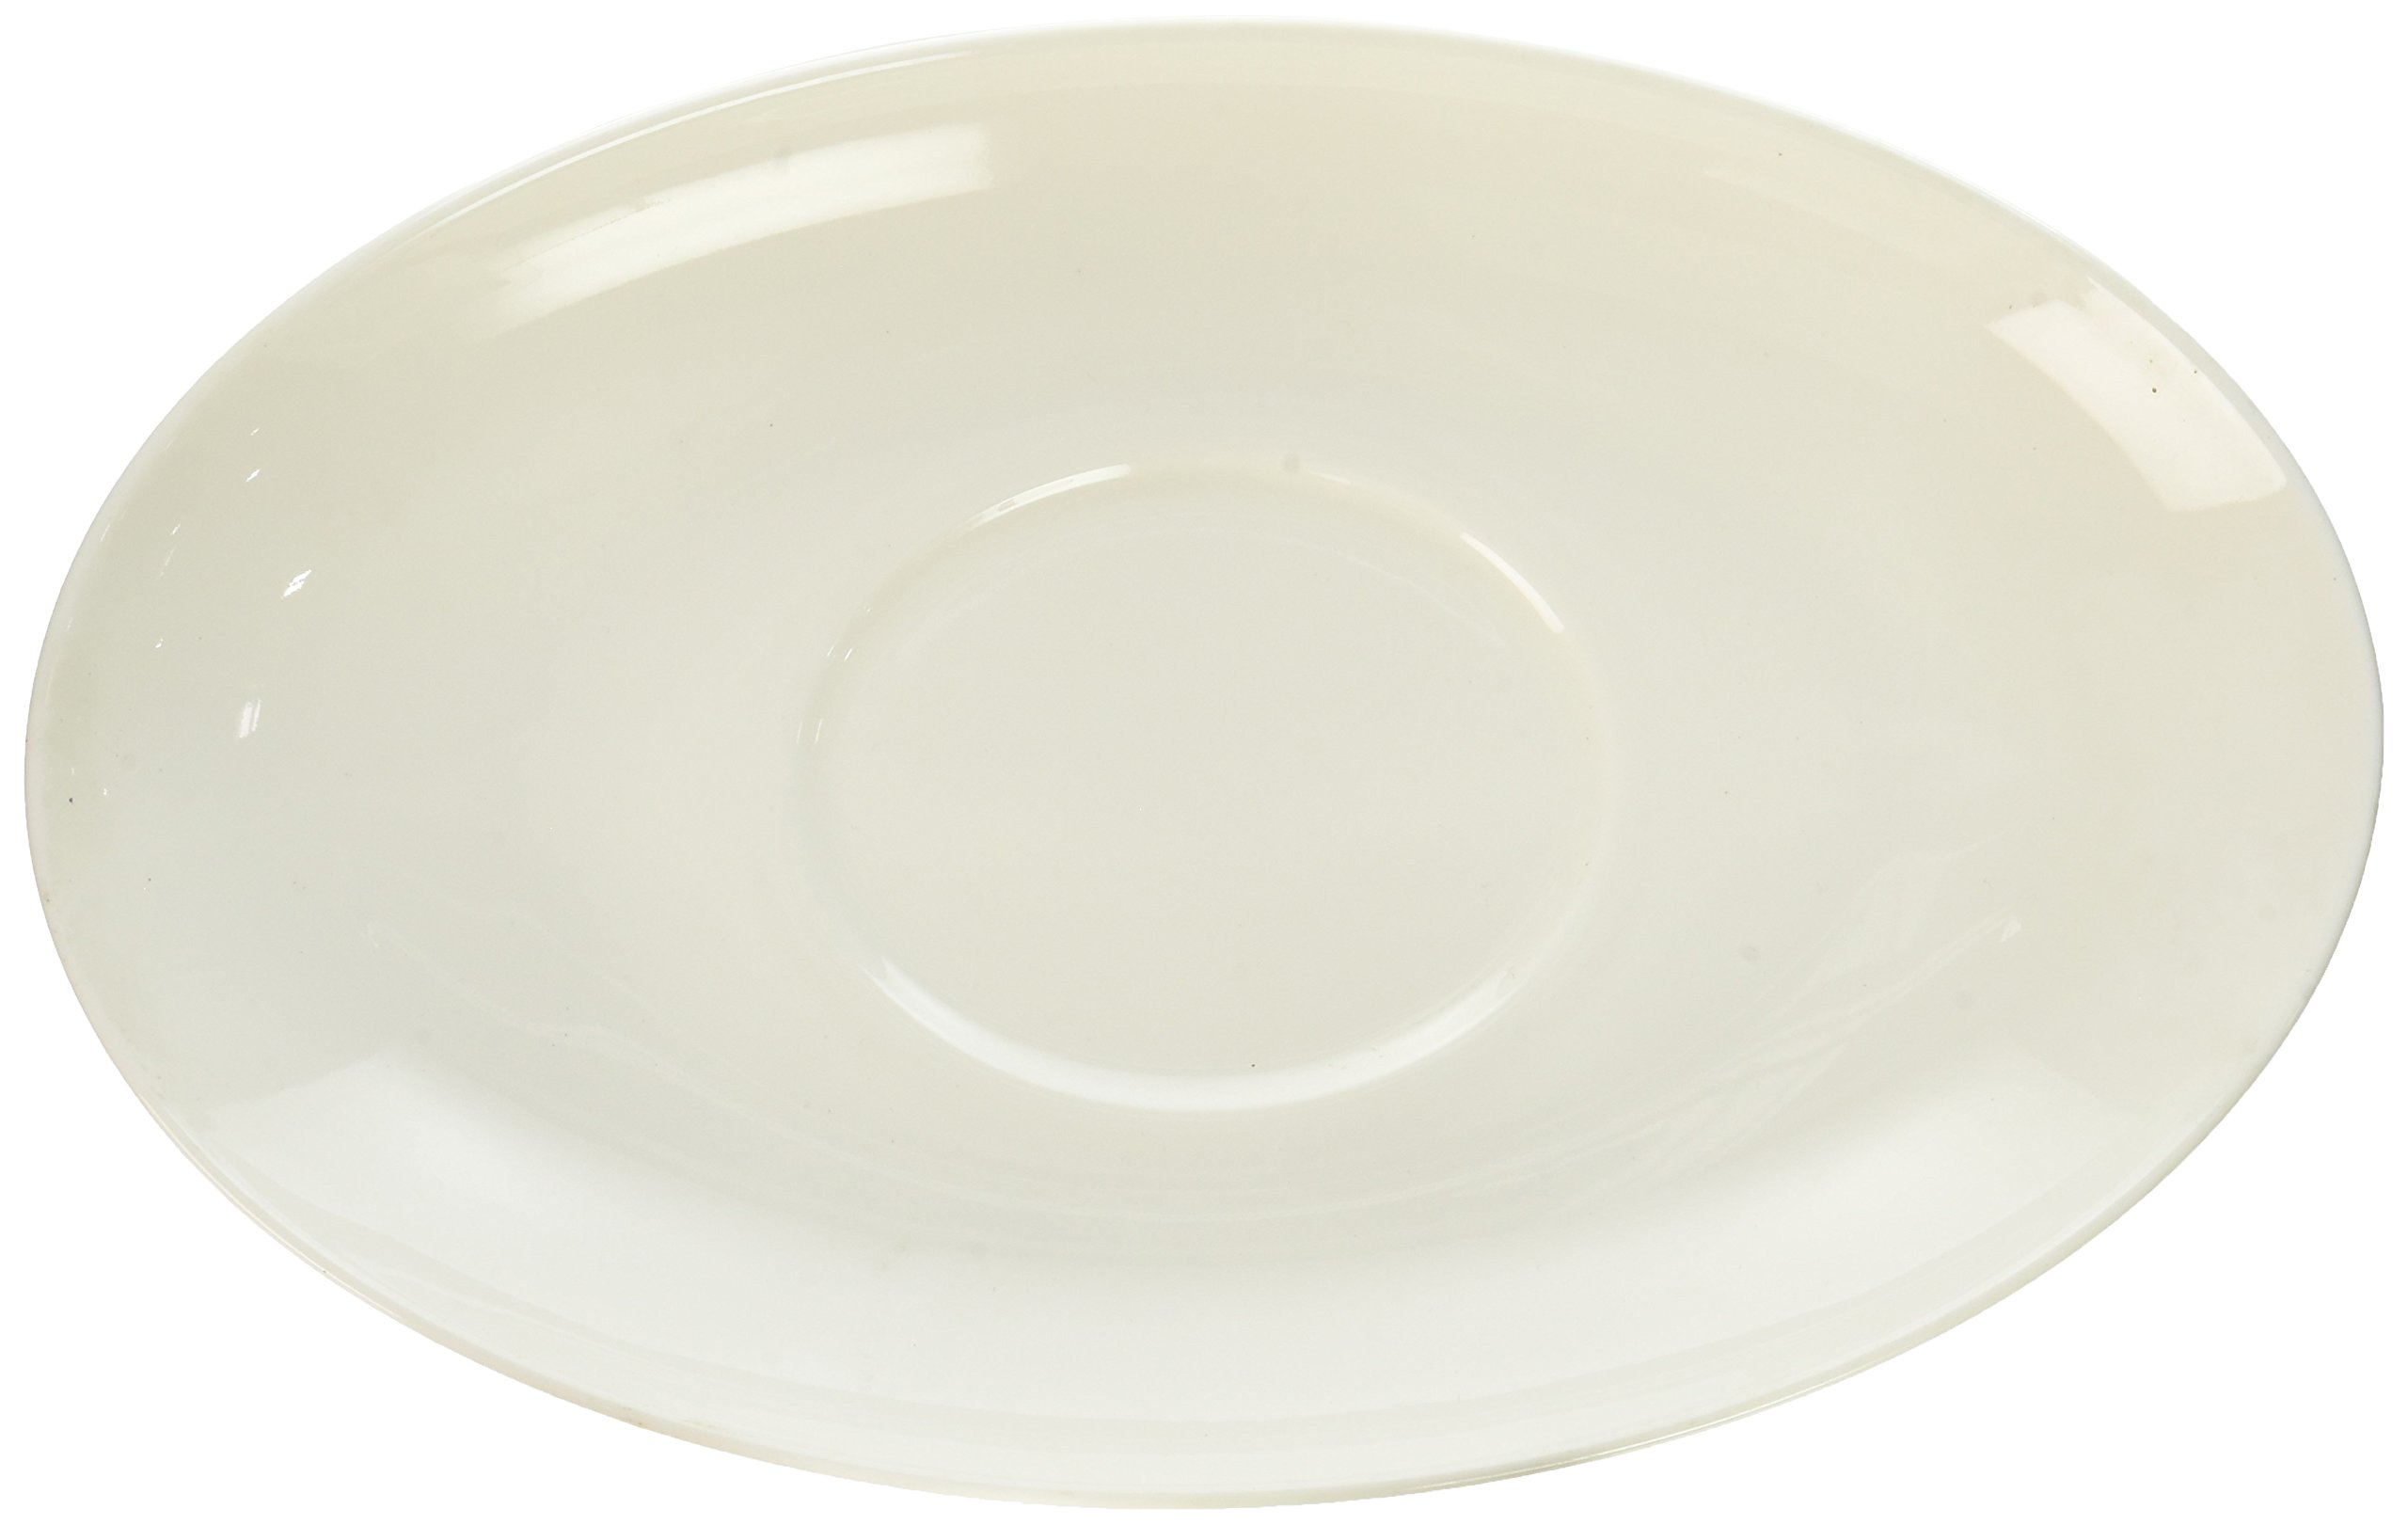 Wedgwood White Leigh Gravy Stand by Wedgwood (Image #1)